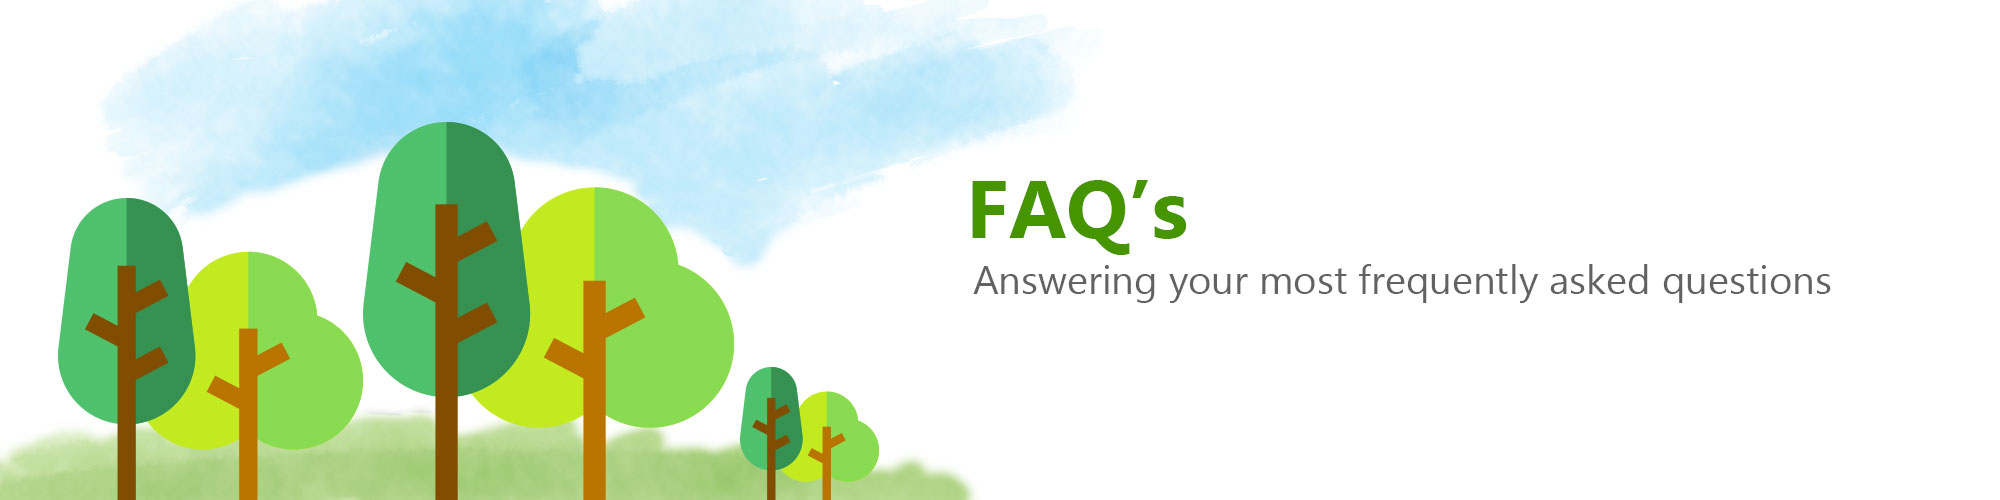 tree surgeon faq banner picture of cartoon trees